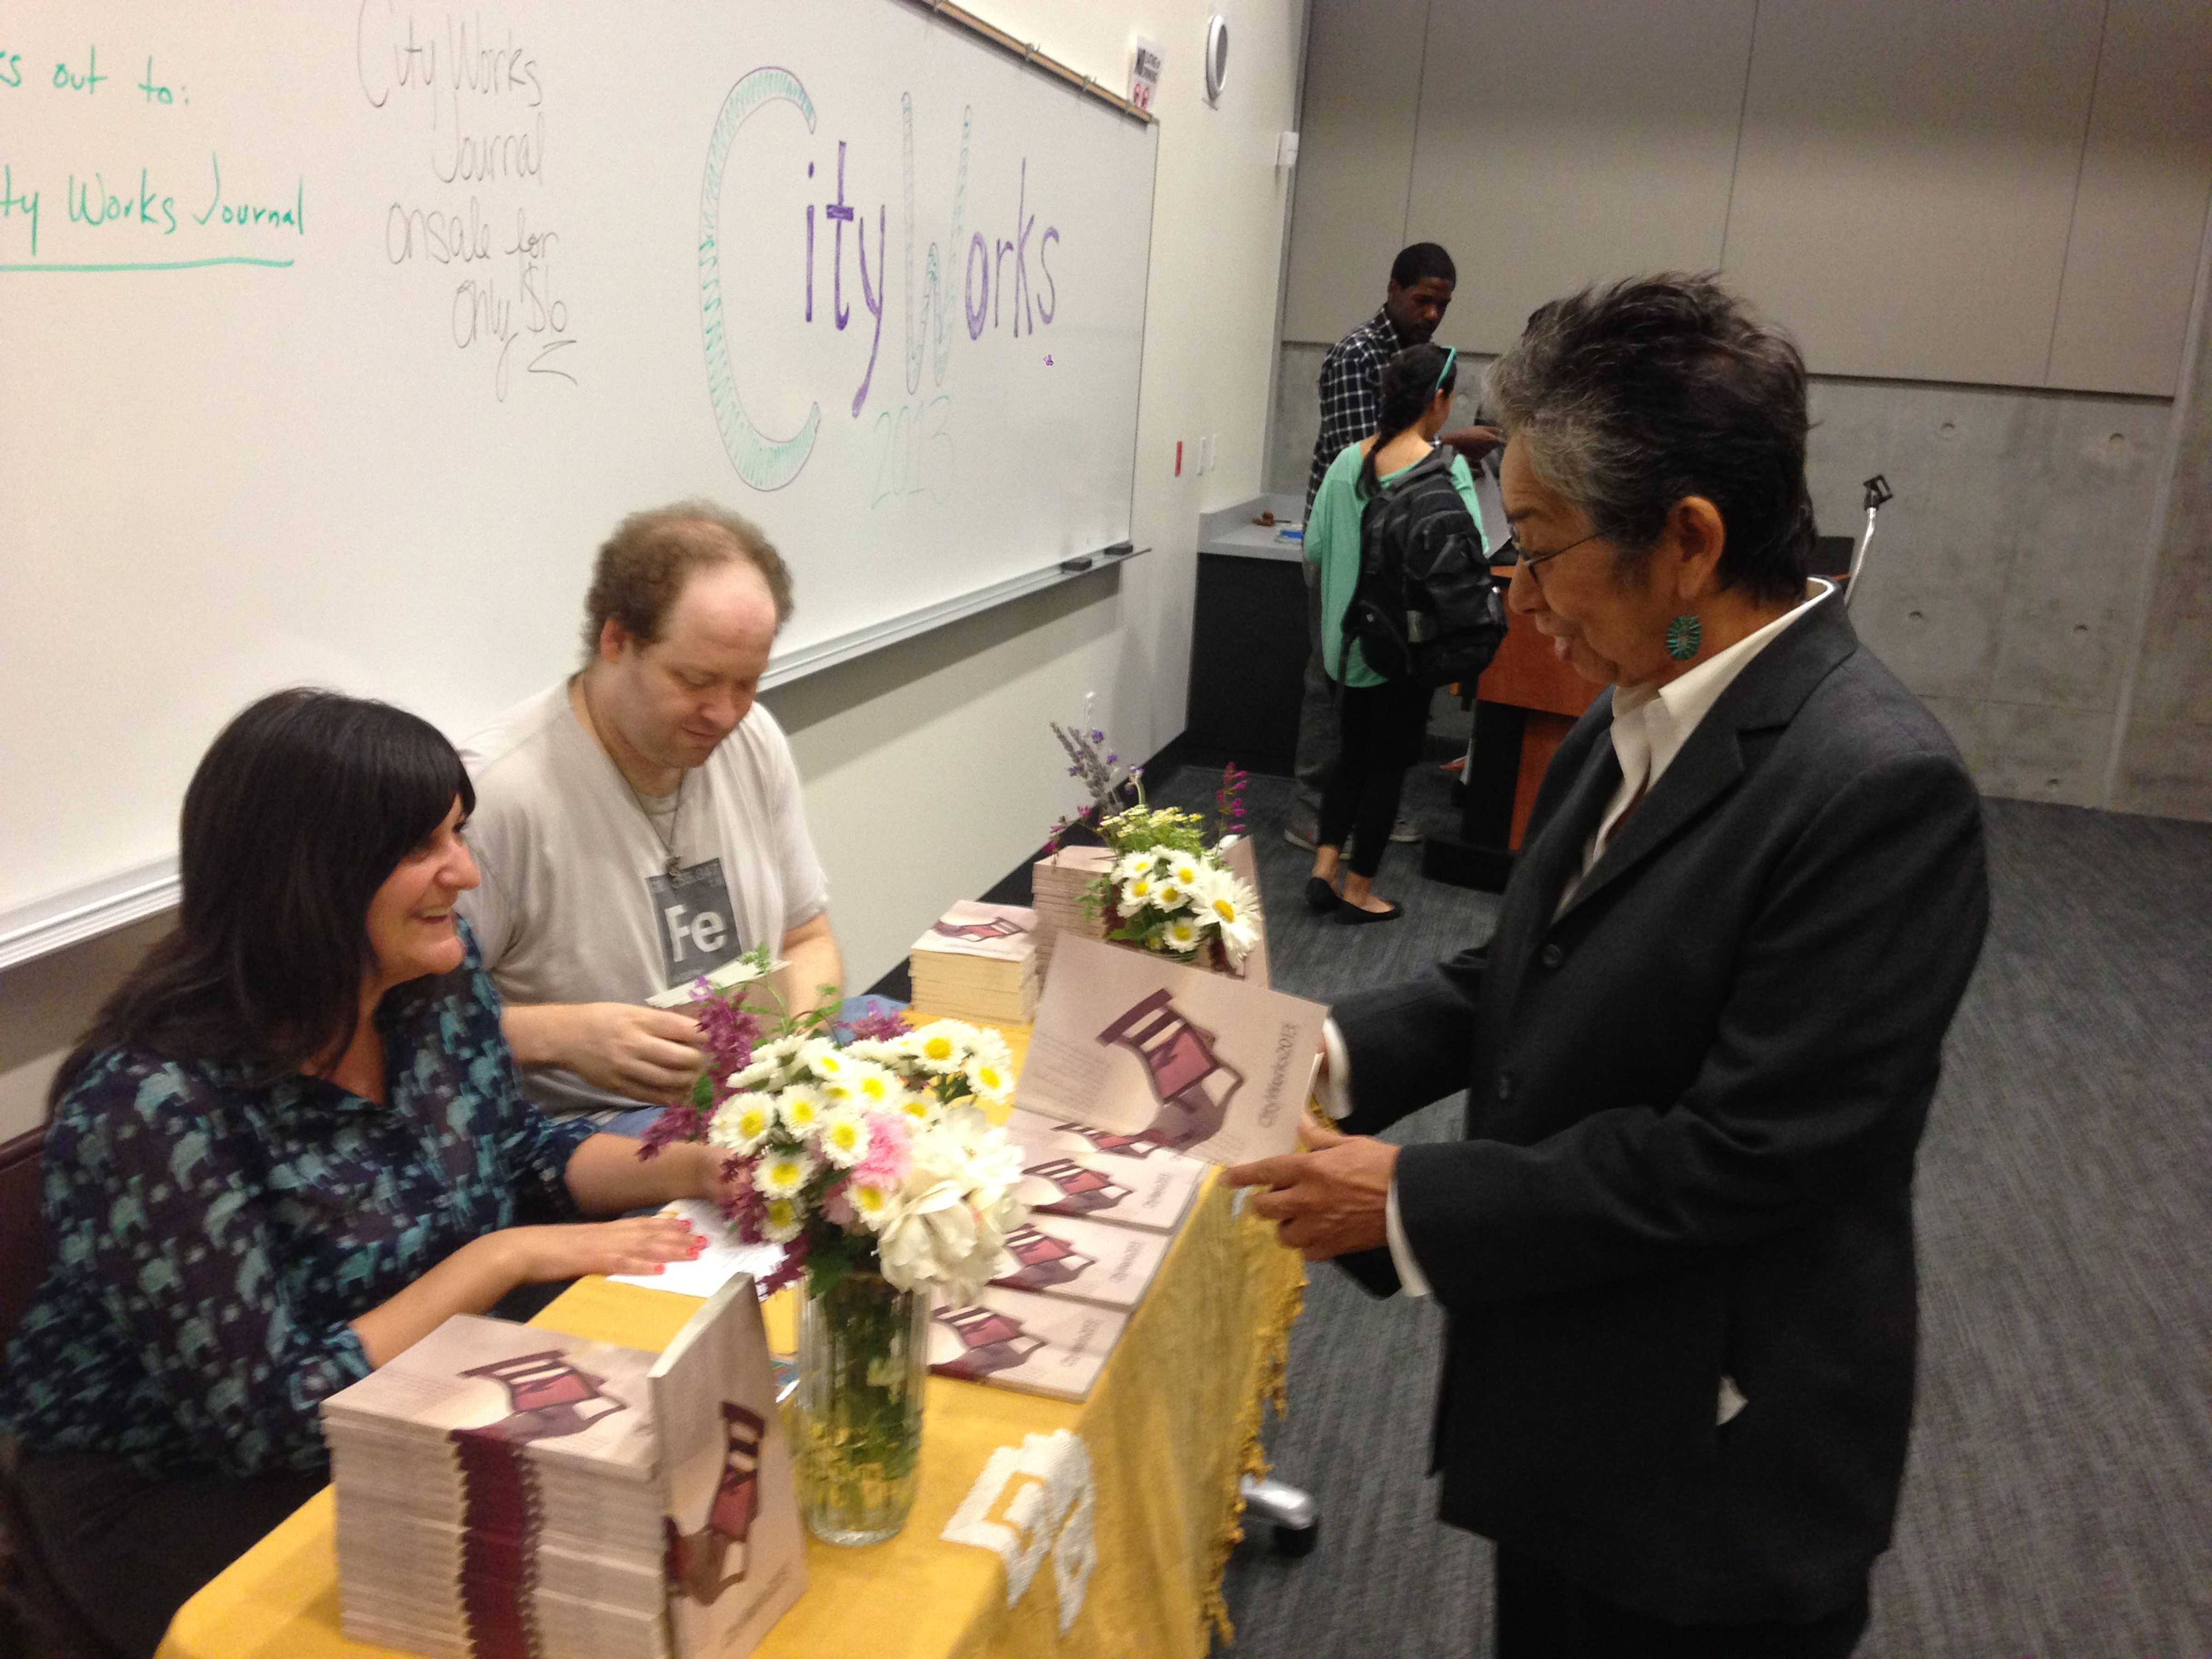 Assistant professor of English, Nadia Mandilawi sells journals for City Works on May 15. by Paul Smoot, City Times